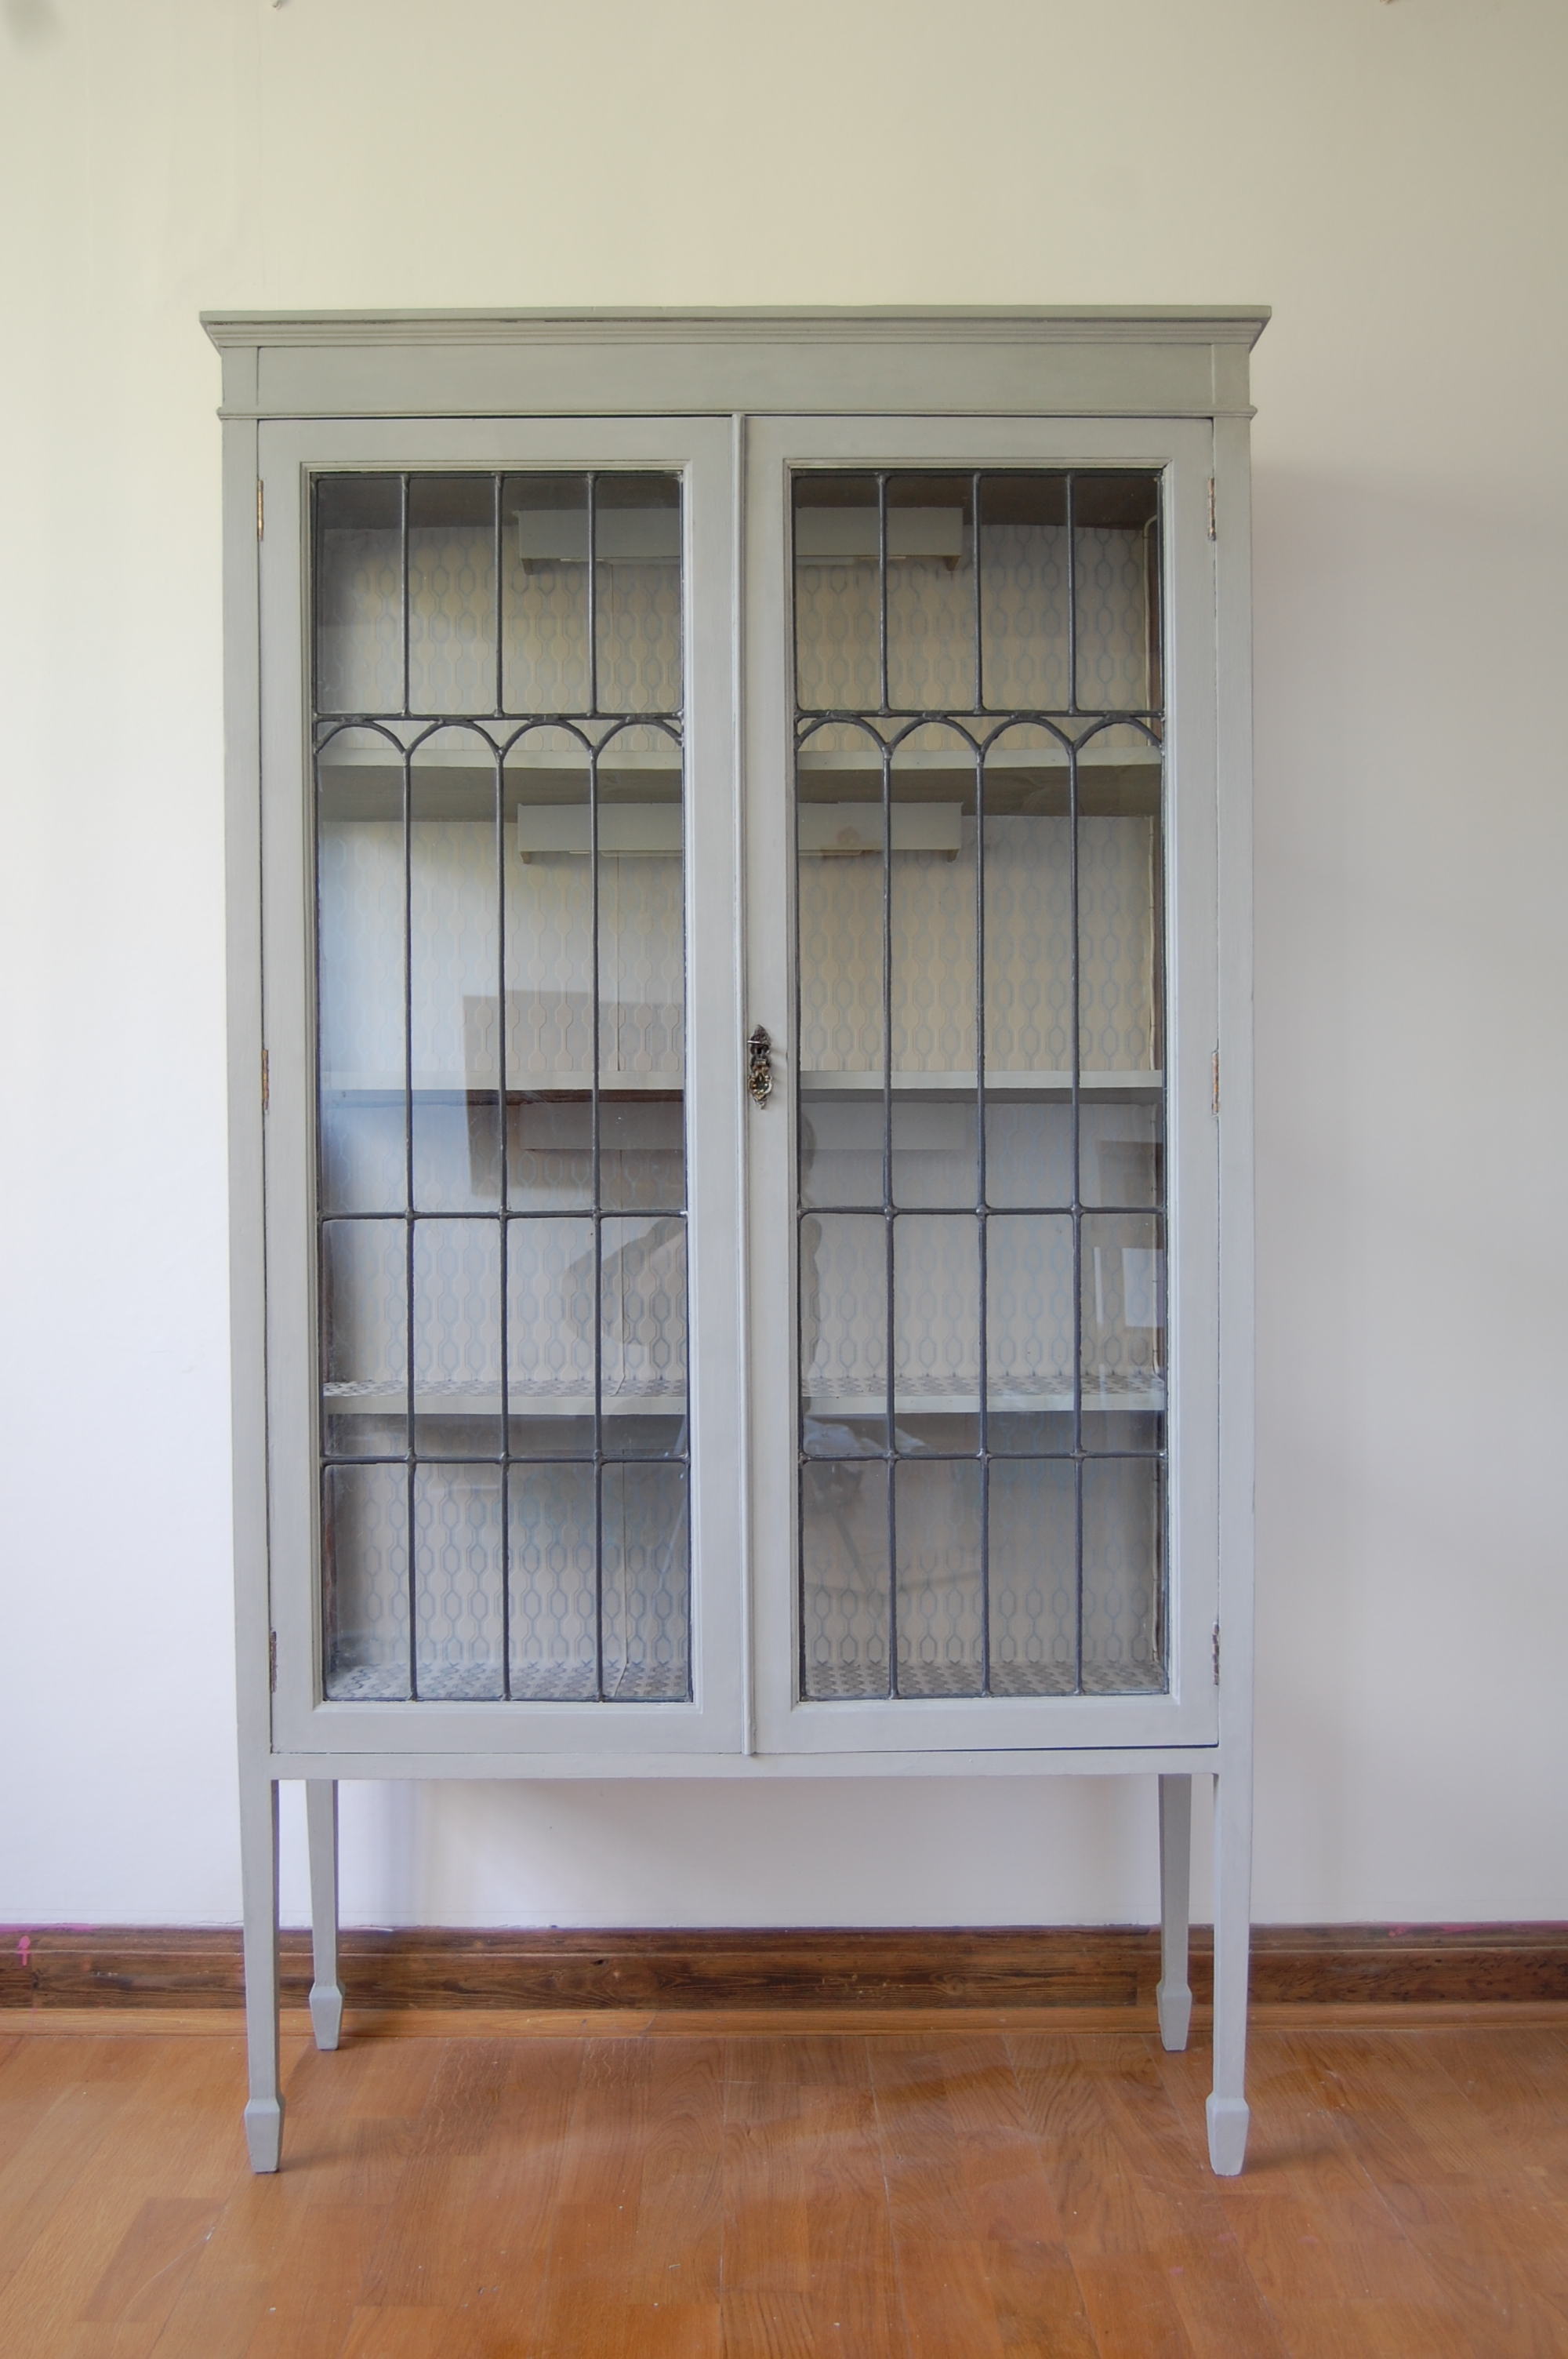 Pleasing Large Display Cabinet With Glass Doors Display Cabinet Interior Design Ideas Apansoteloinfo